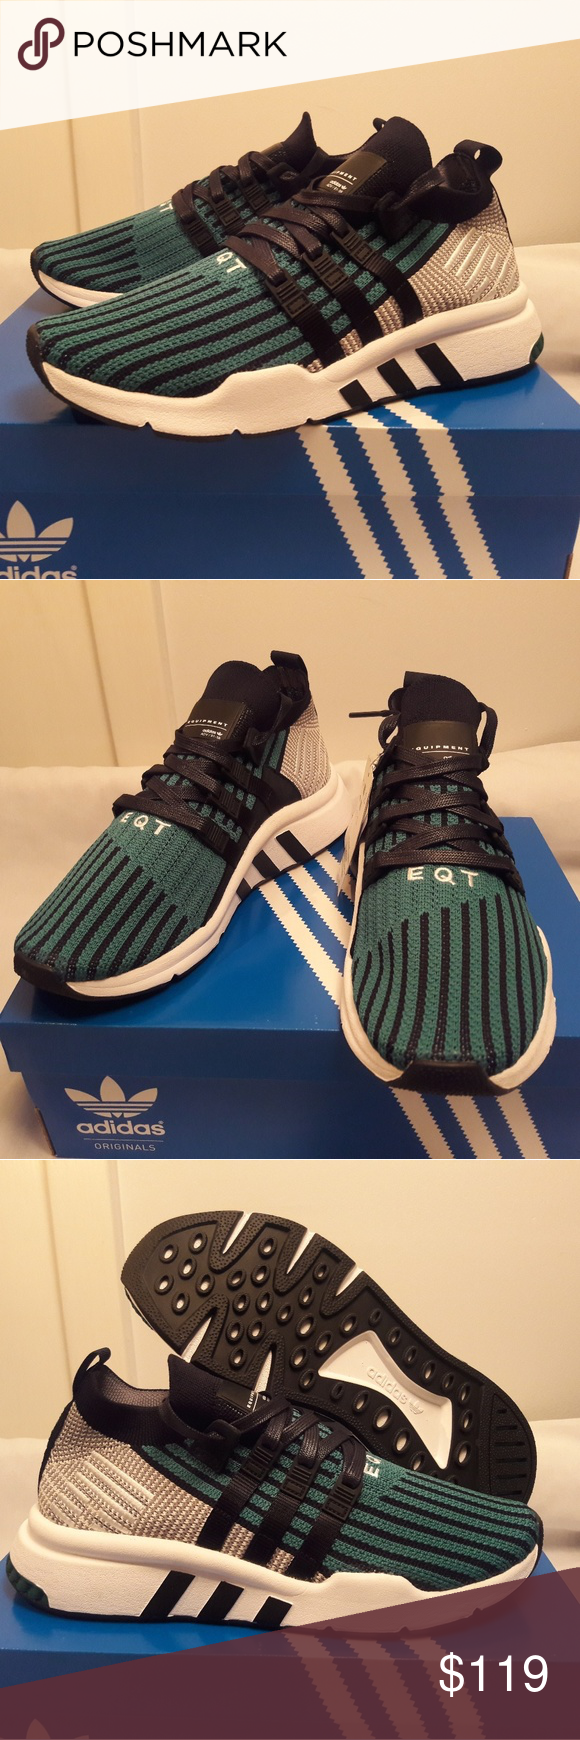 best service 51615 168d7 adidas Originals EQT Support Mid ADV PK 91 18 Condition  Brand new with box